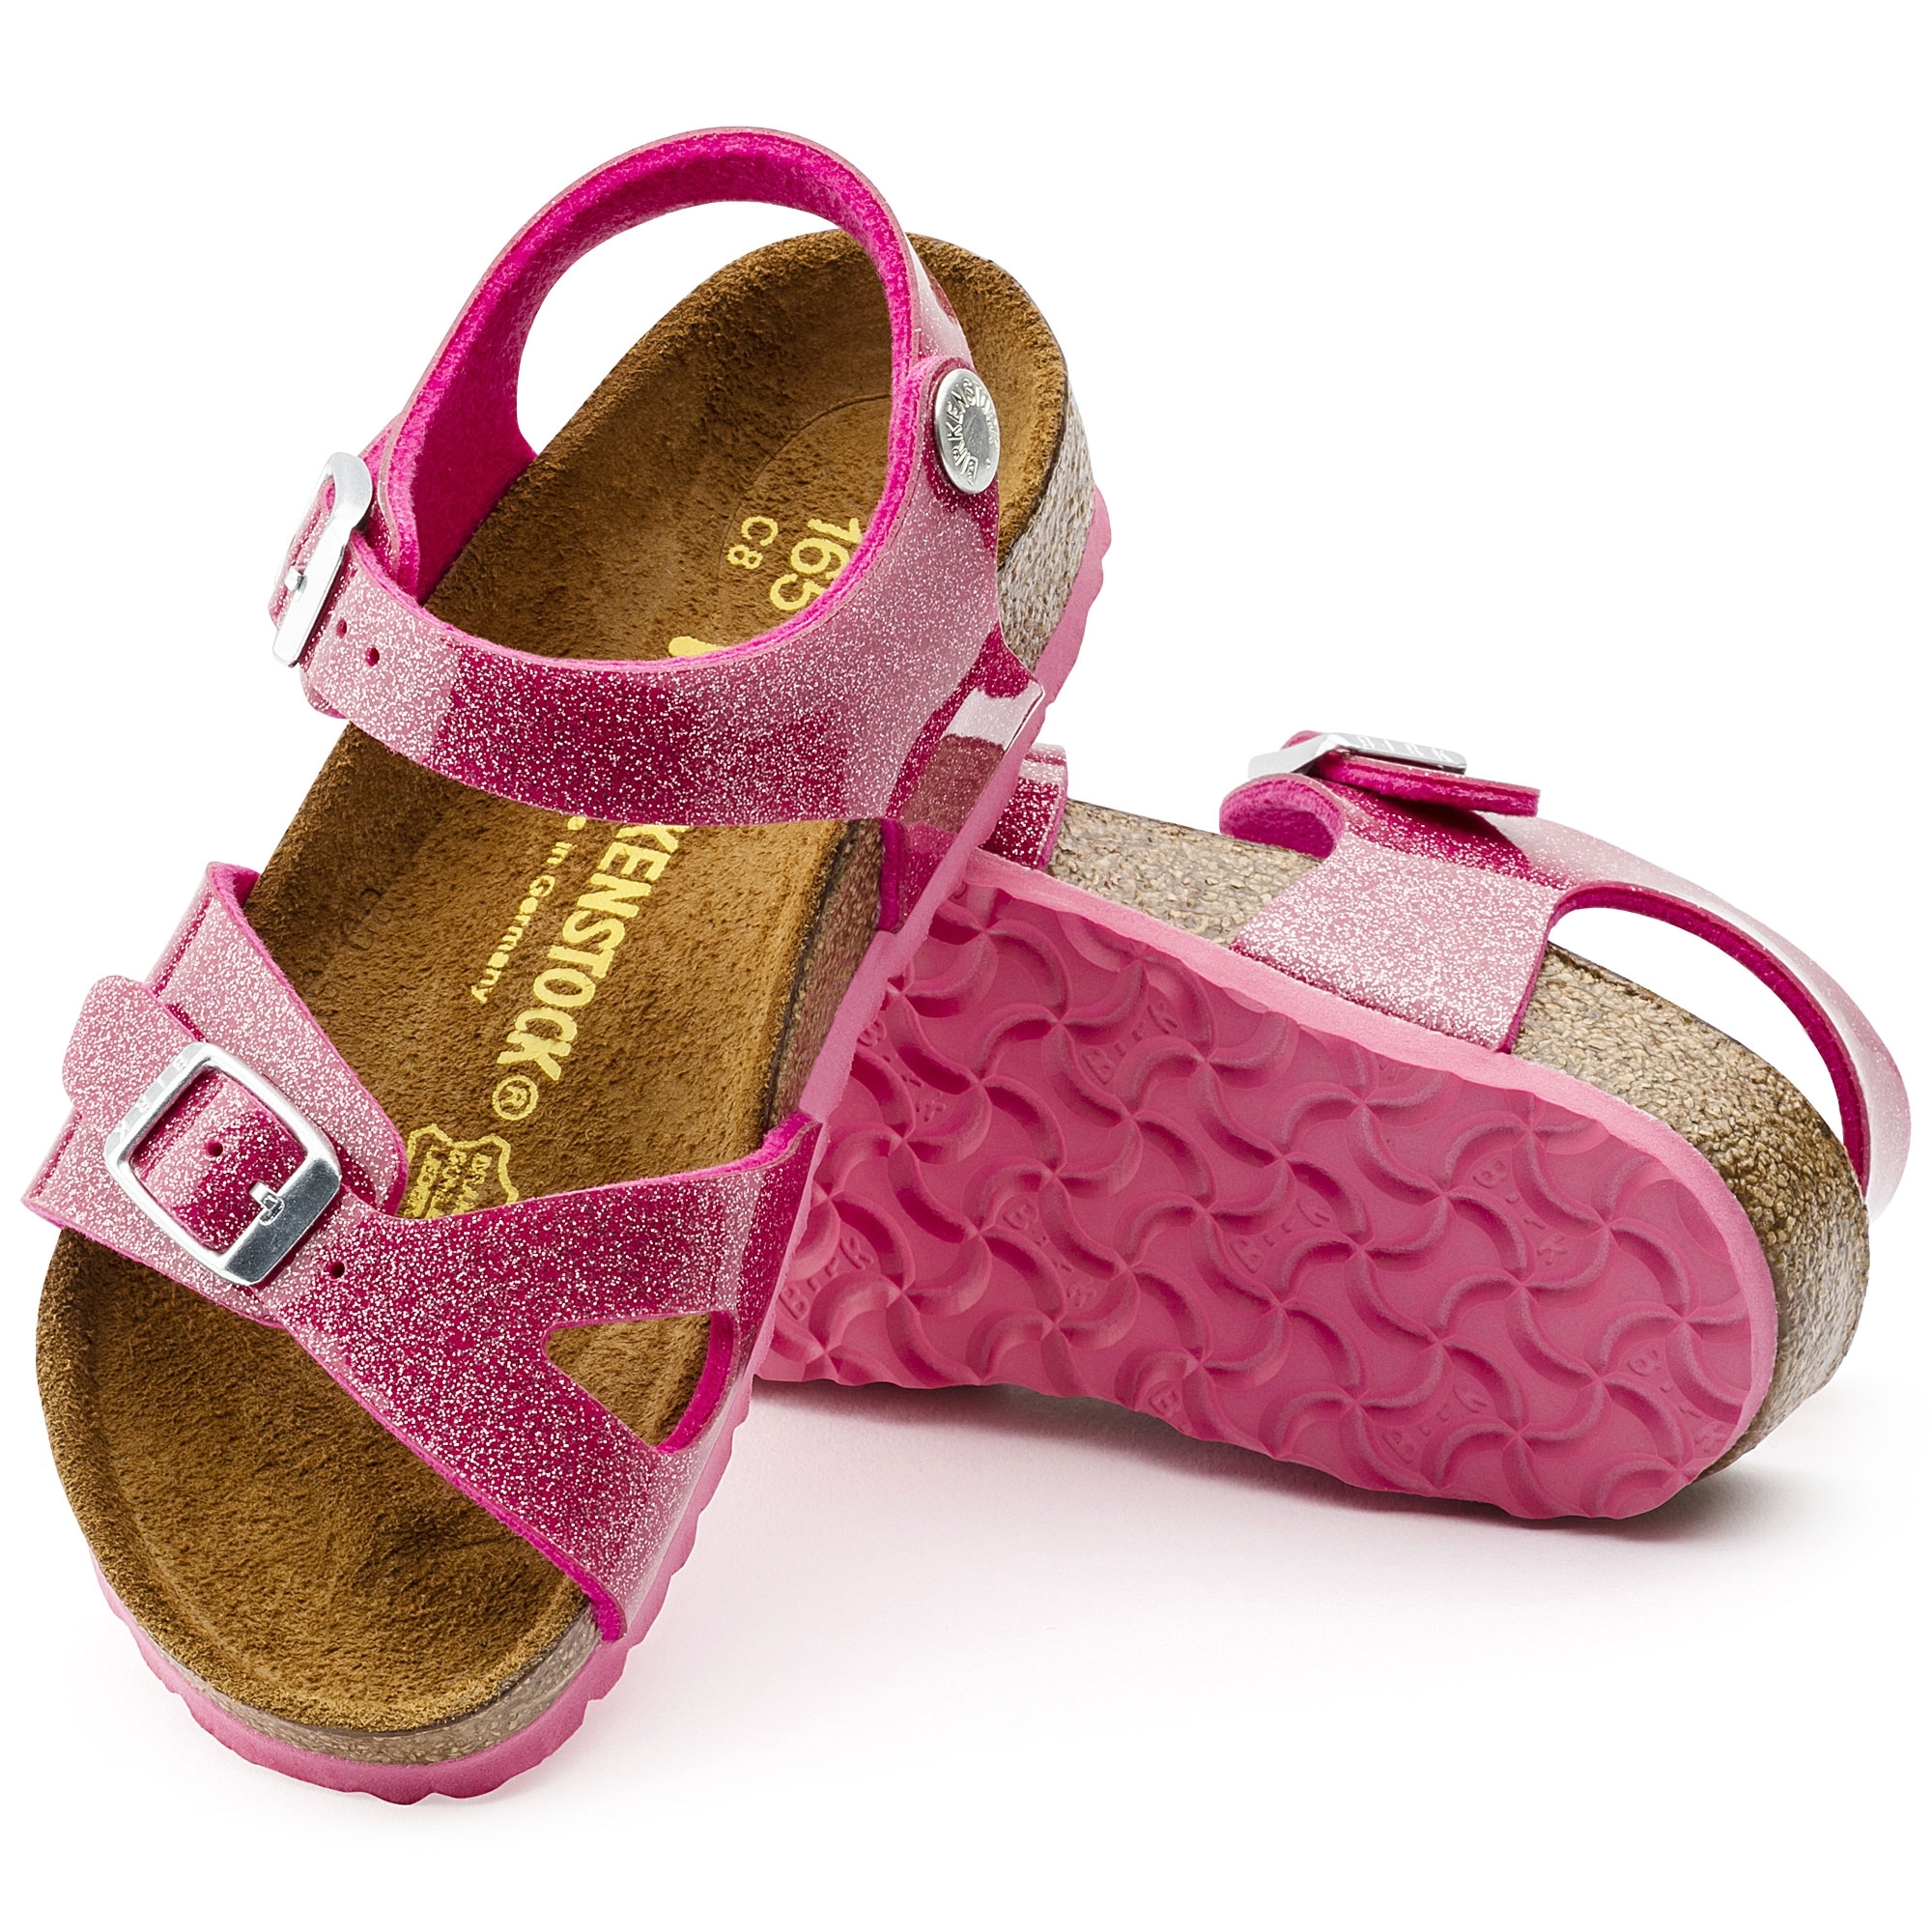 63988349be65 Birkenstock RIO 1003234 Kids Two Strap Sandals Galaxy Bright Rose ...